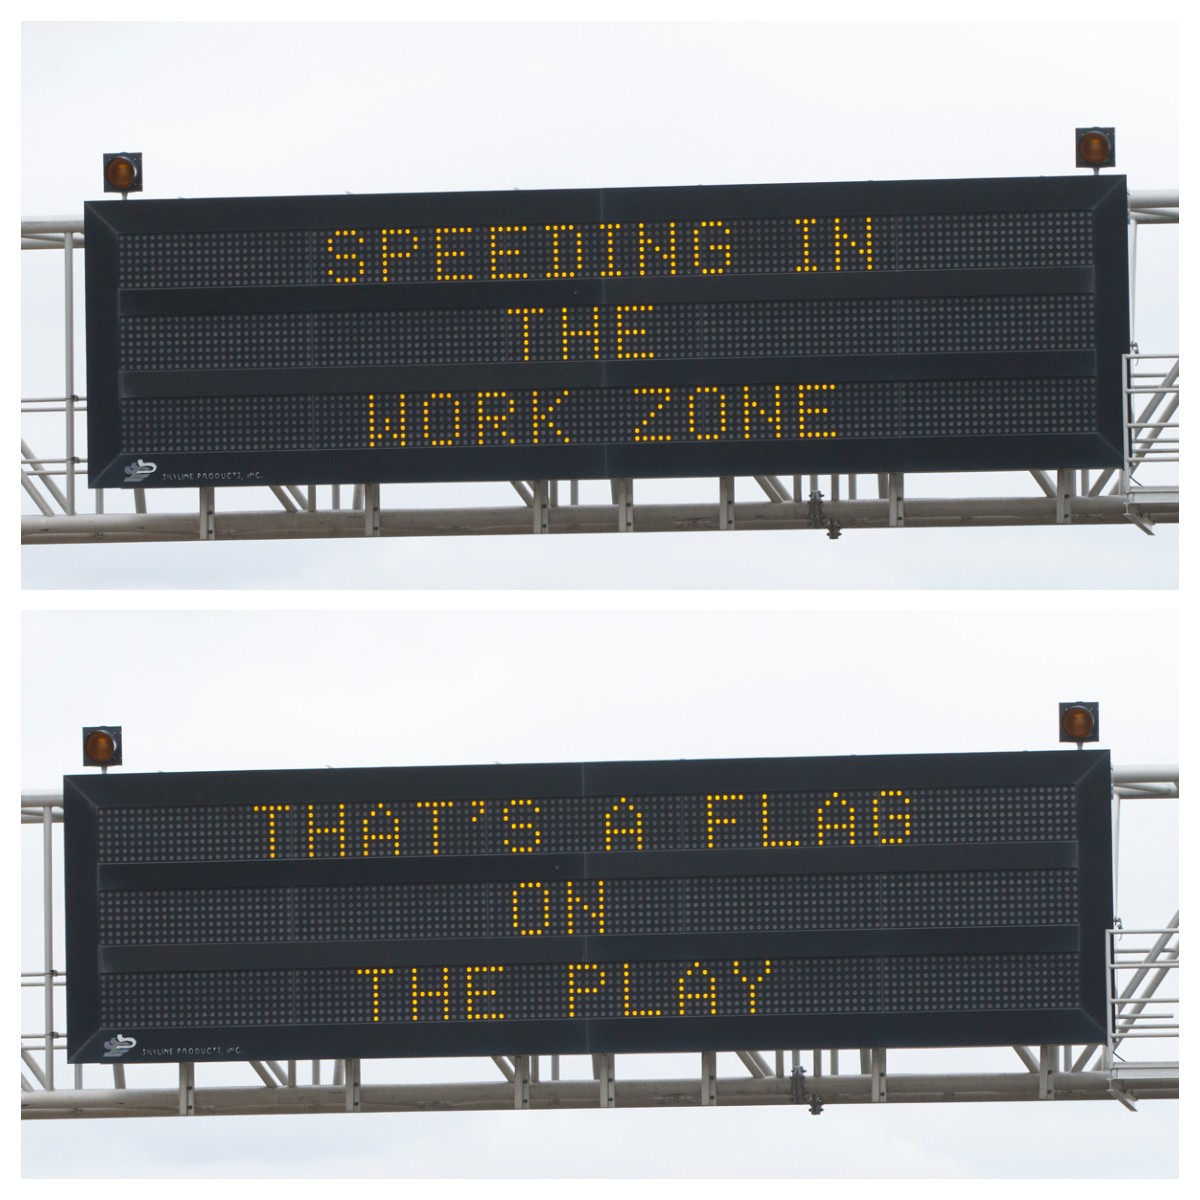 /content/dam/ok/en/odot/images/message-signs/05.18.16.jpg